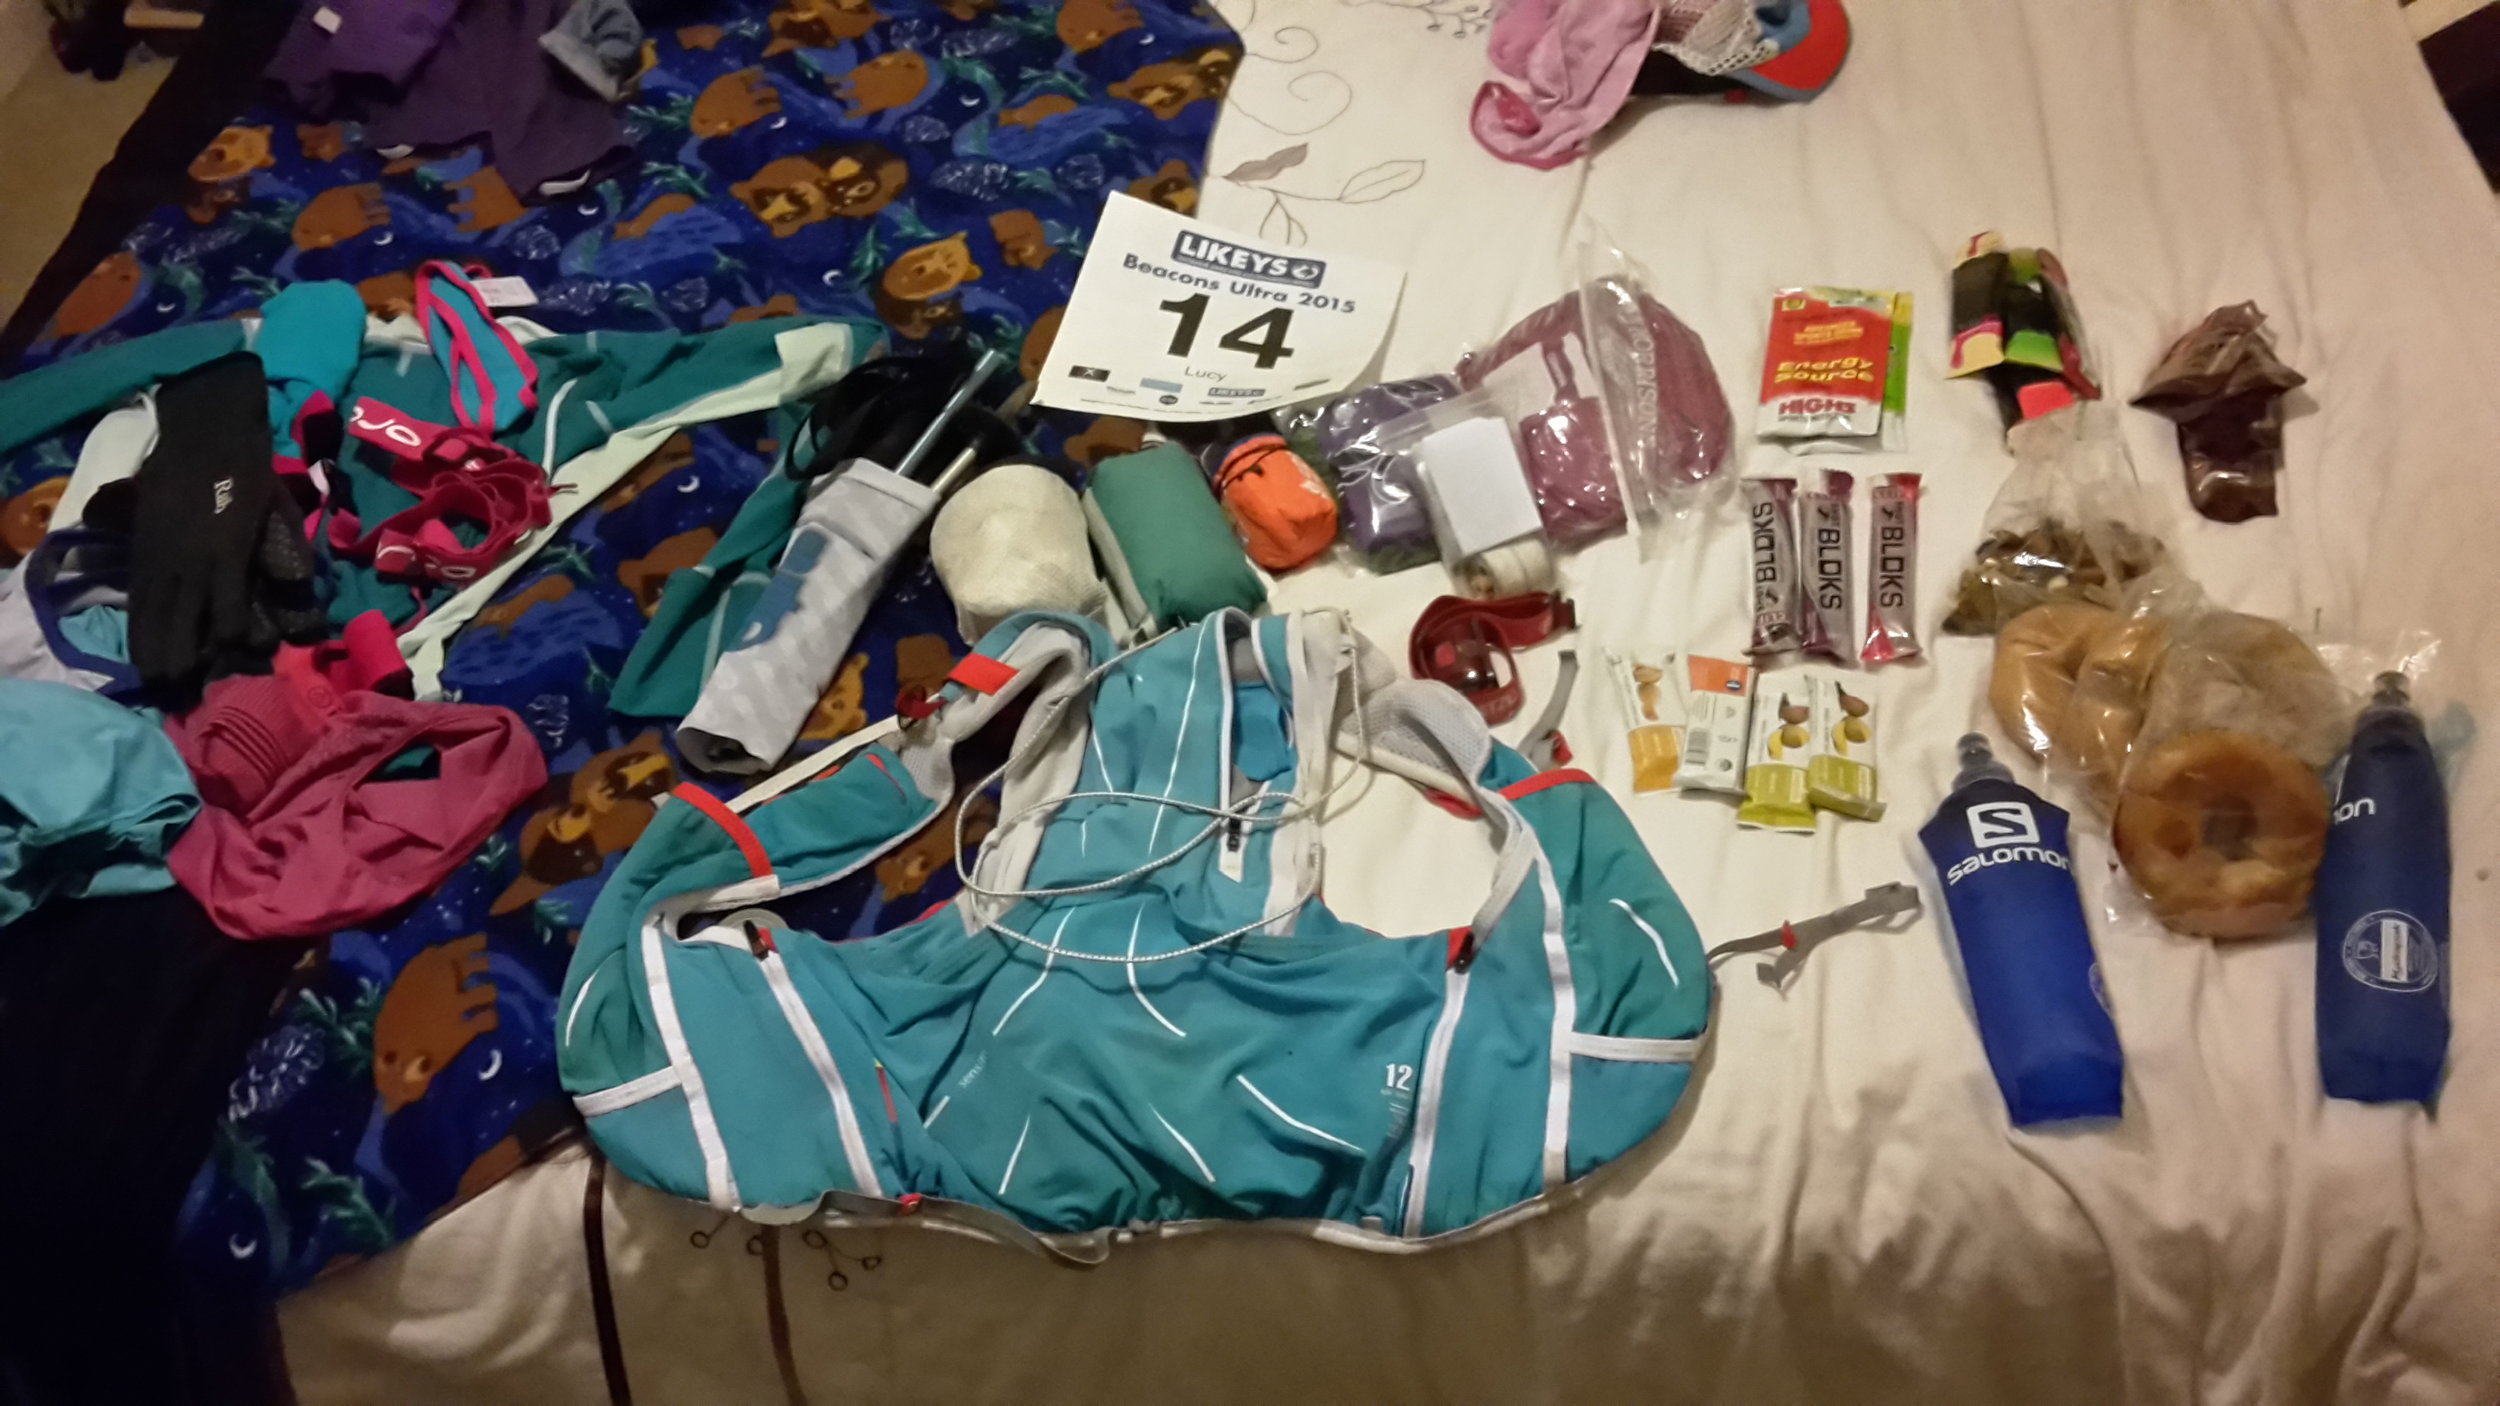 Packing for the Breacon's Ultra